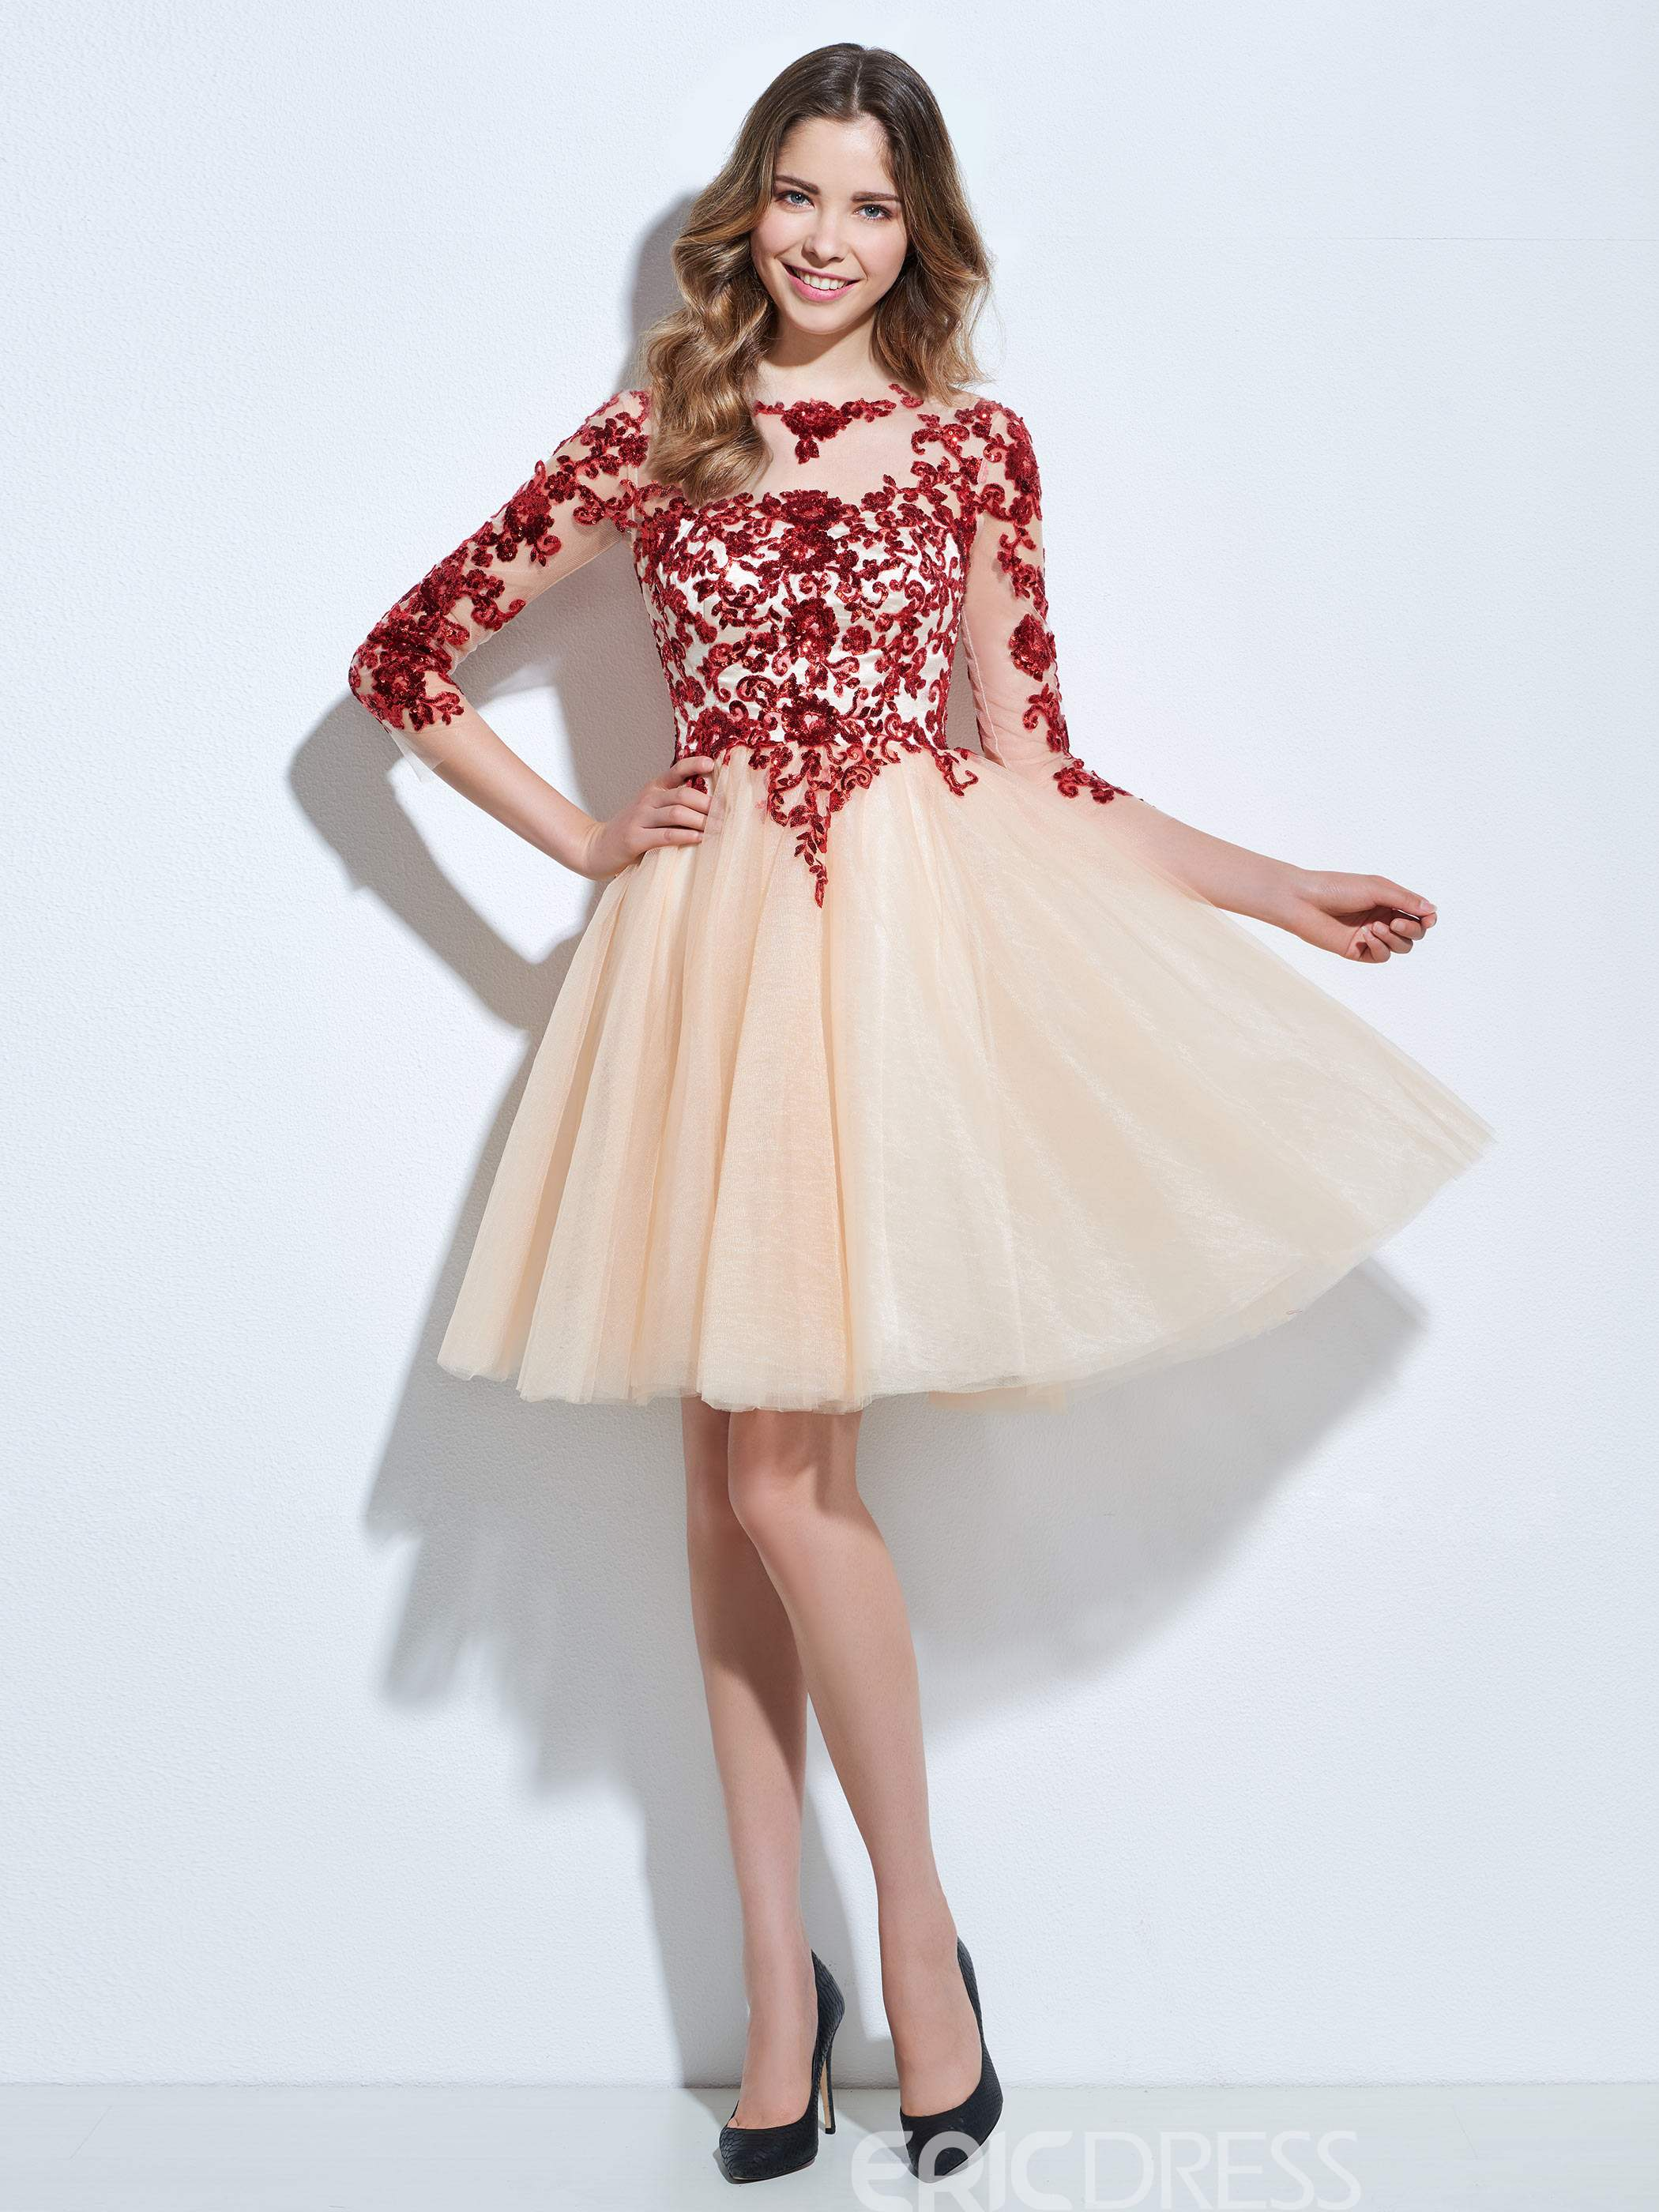 Ericdress A-Line 3/4 Sleeves Cocktail Dress In Knee-Length With Appliques And Sequins